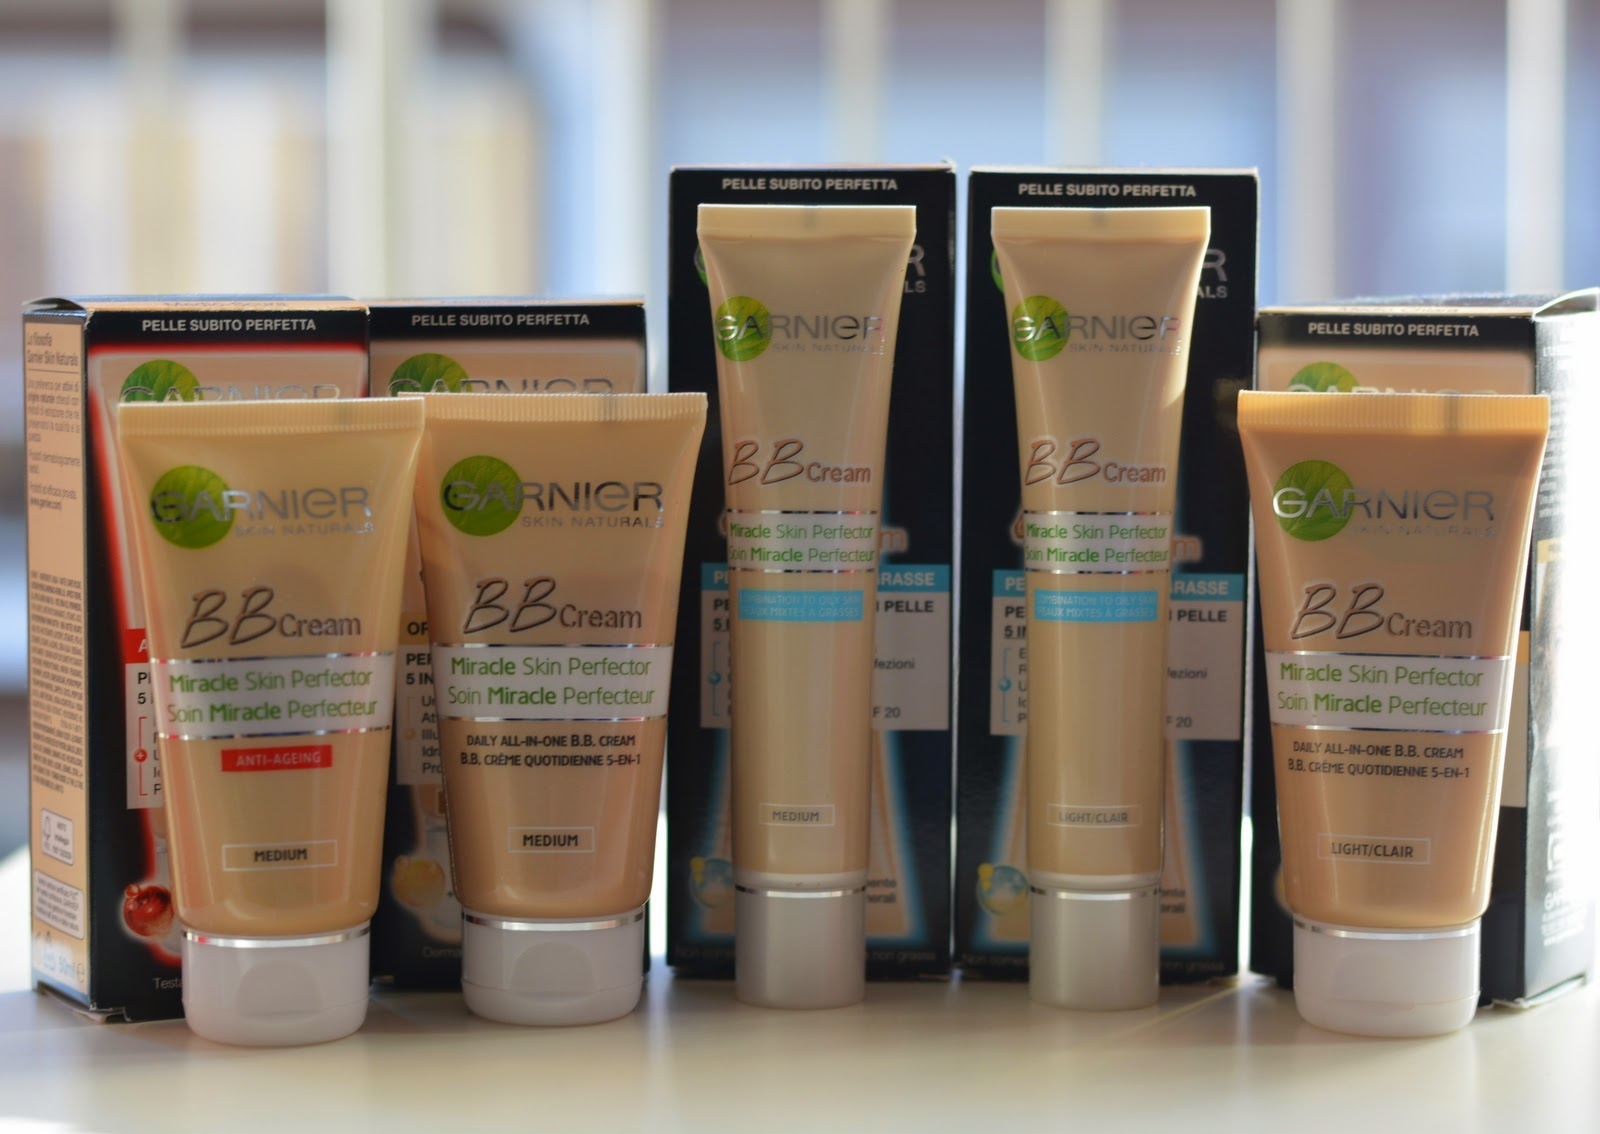 BB CREAM GARNIER , BEAUTY BLOGGER , CULTURE AND TREND